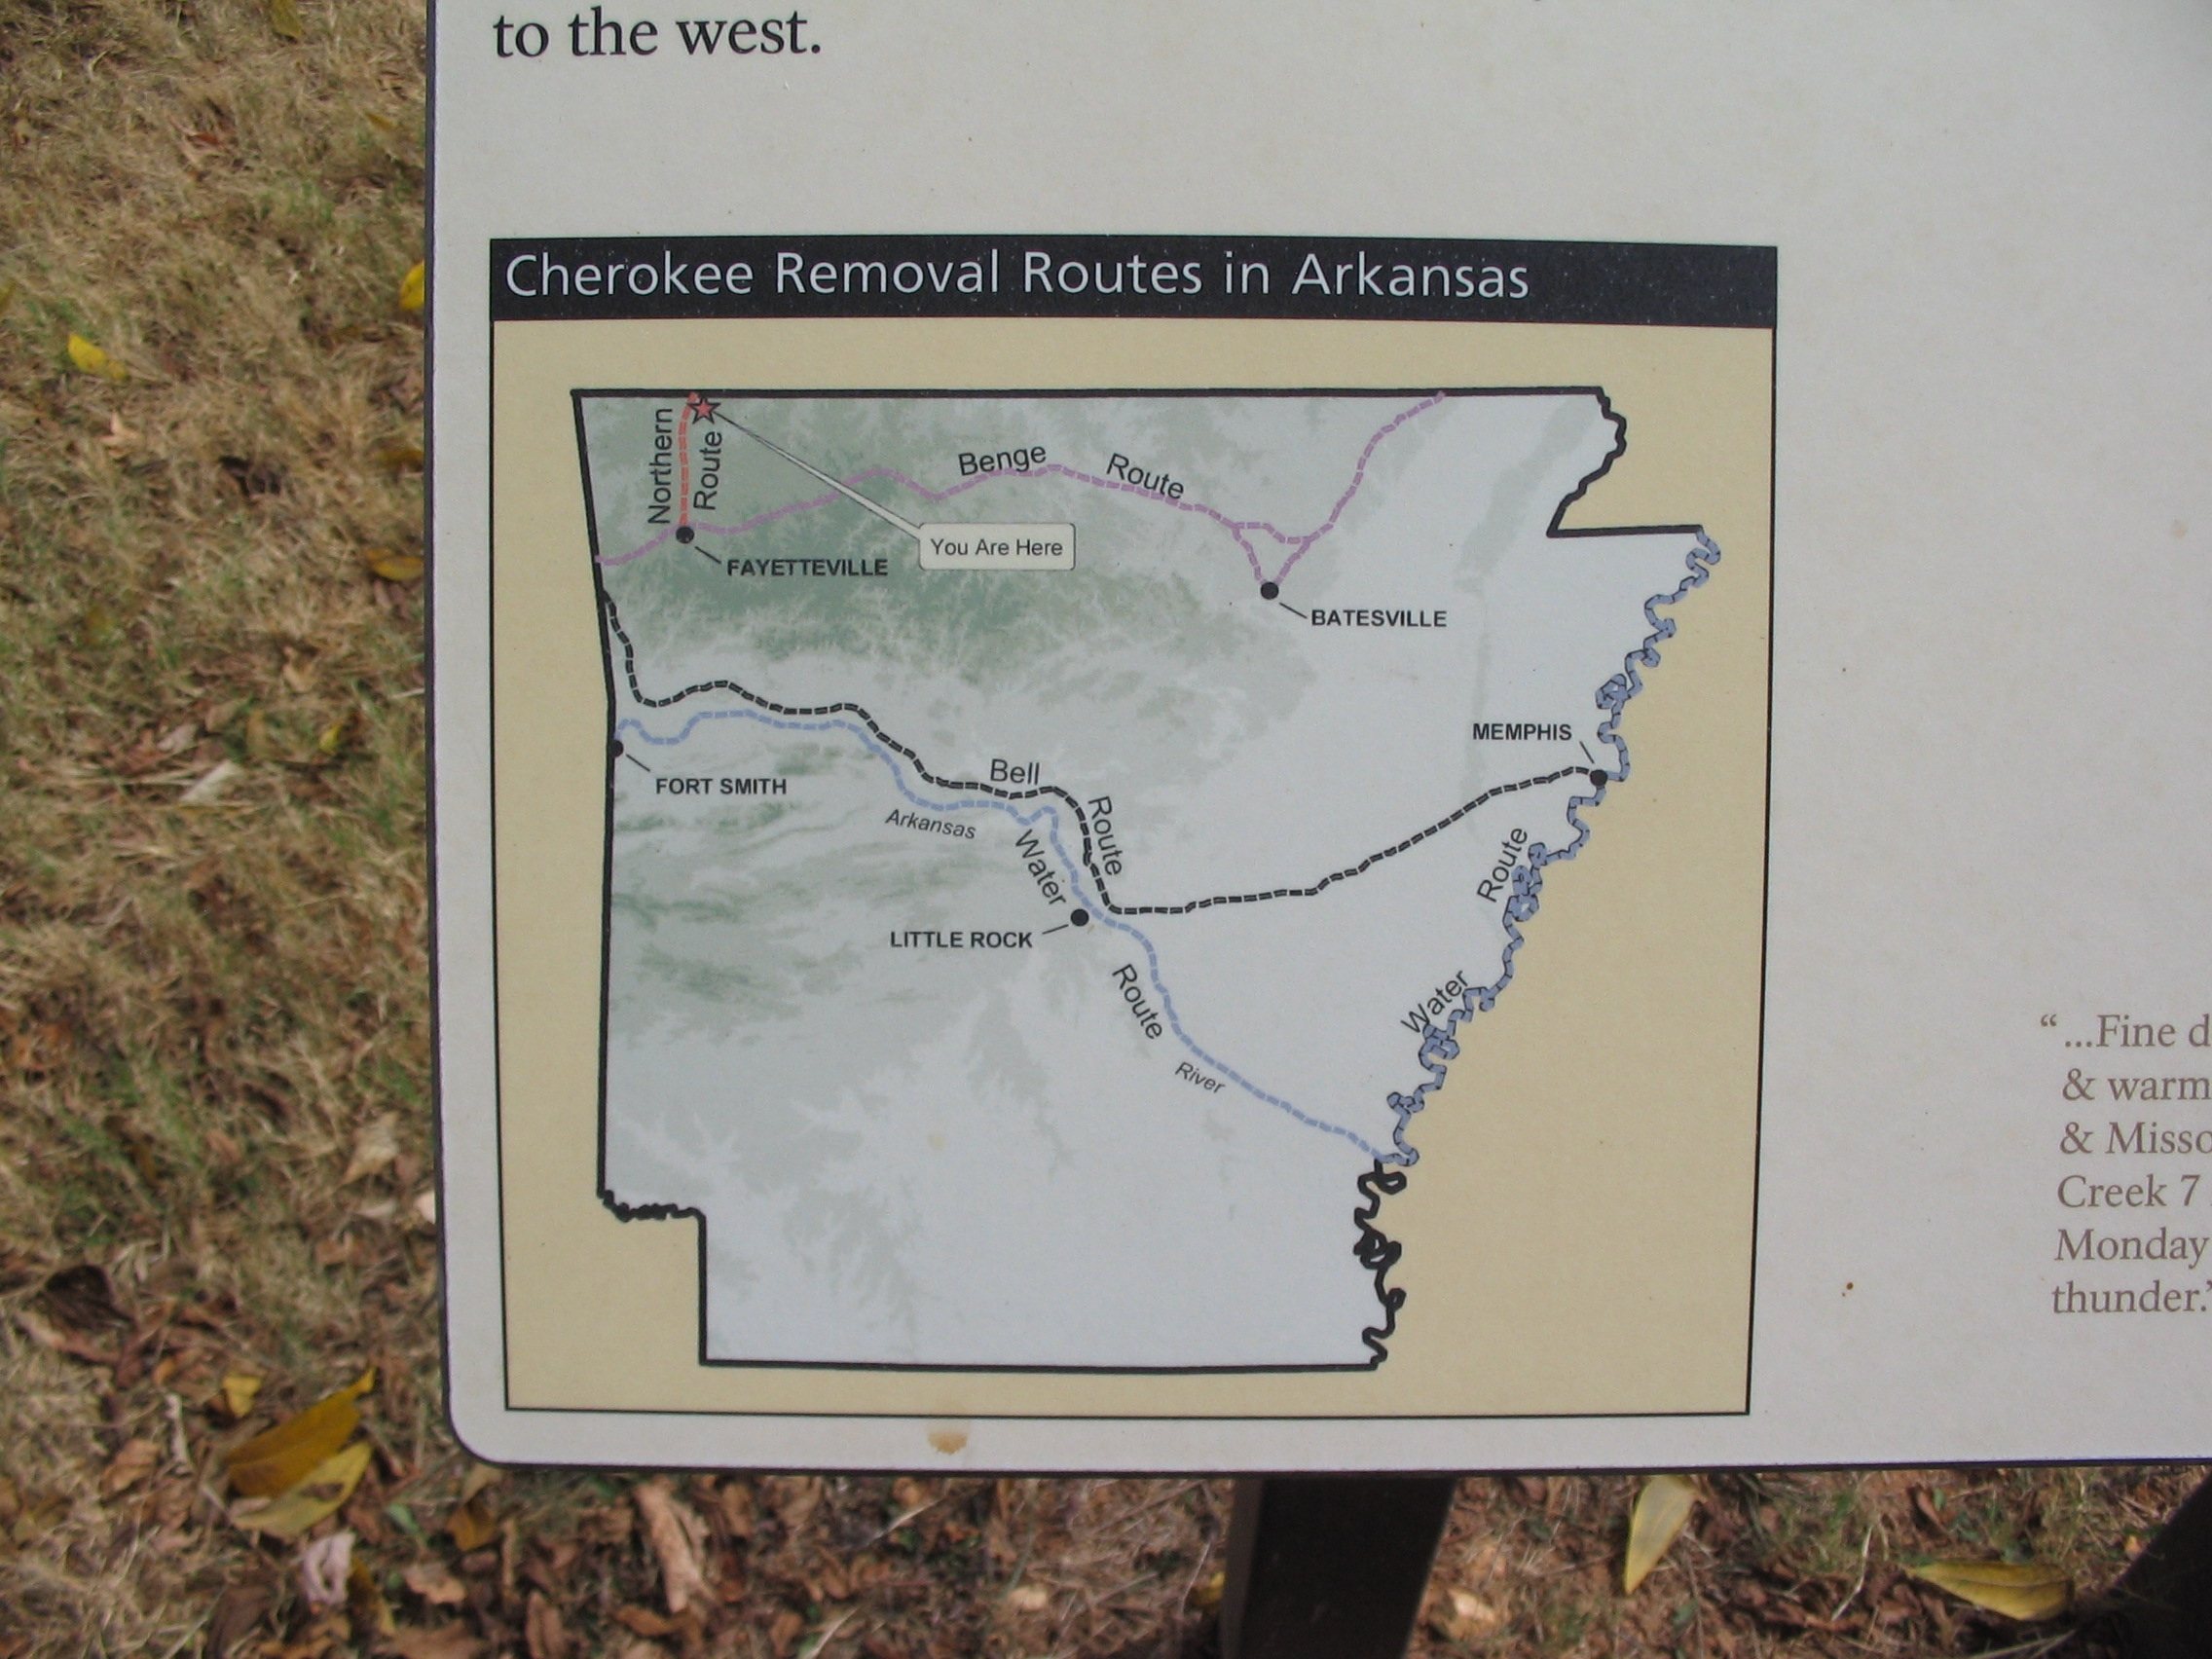 Cherokee Removal Routes in Arkansas